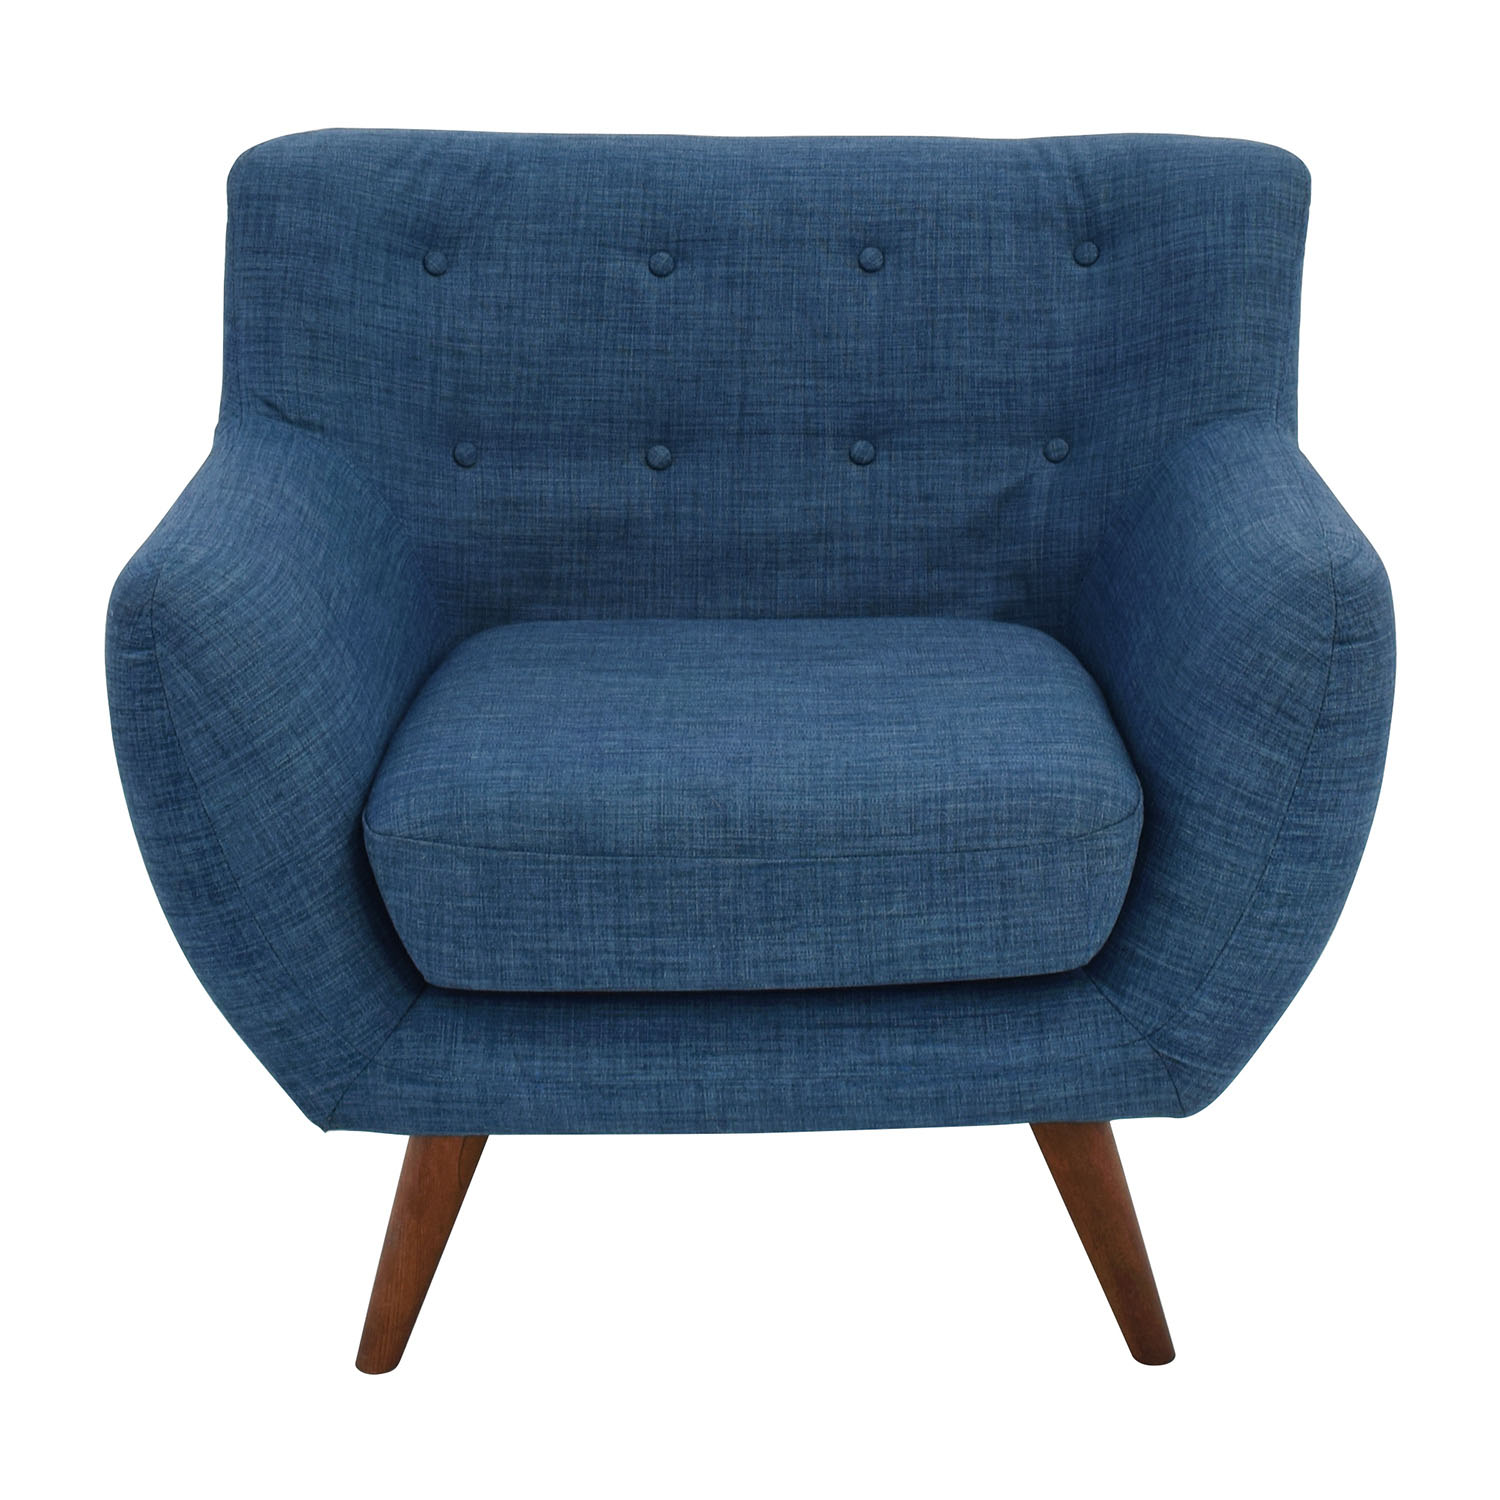 Olson Olson Mid-Century Blue Tufted Arm Chair coupon